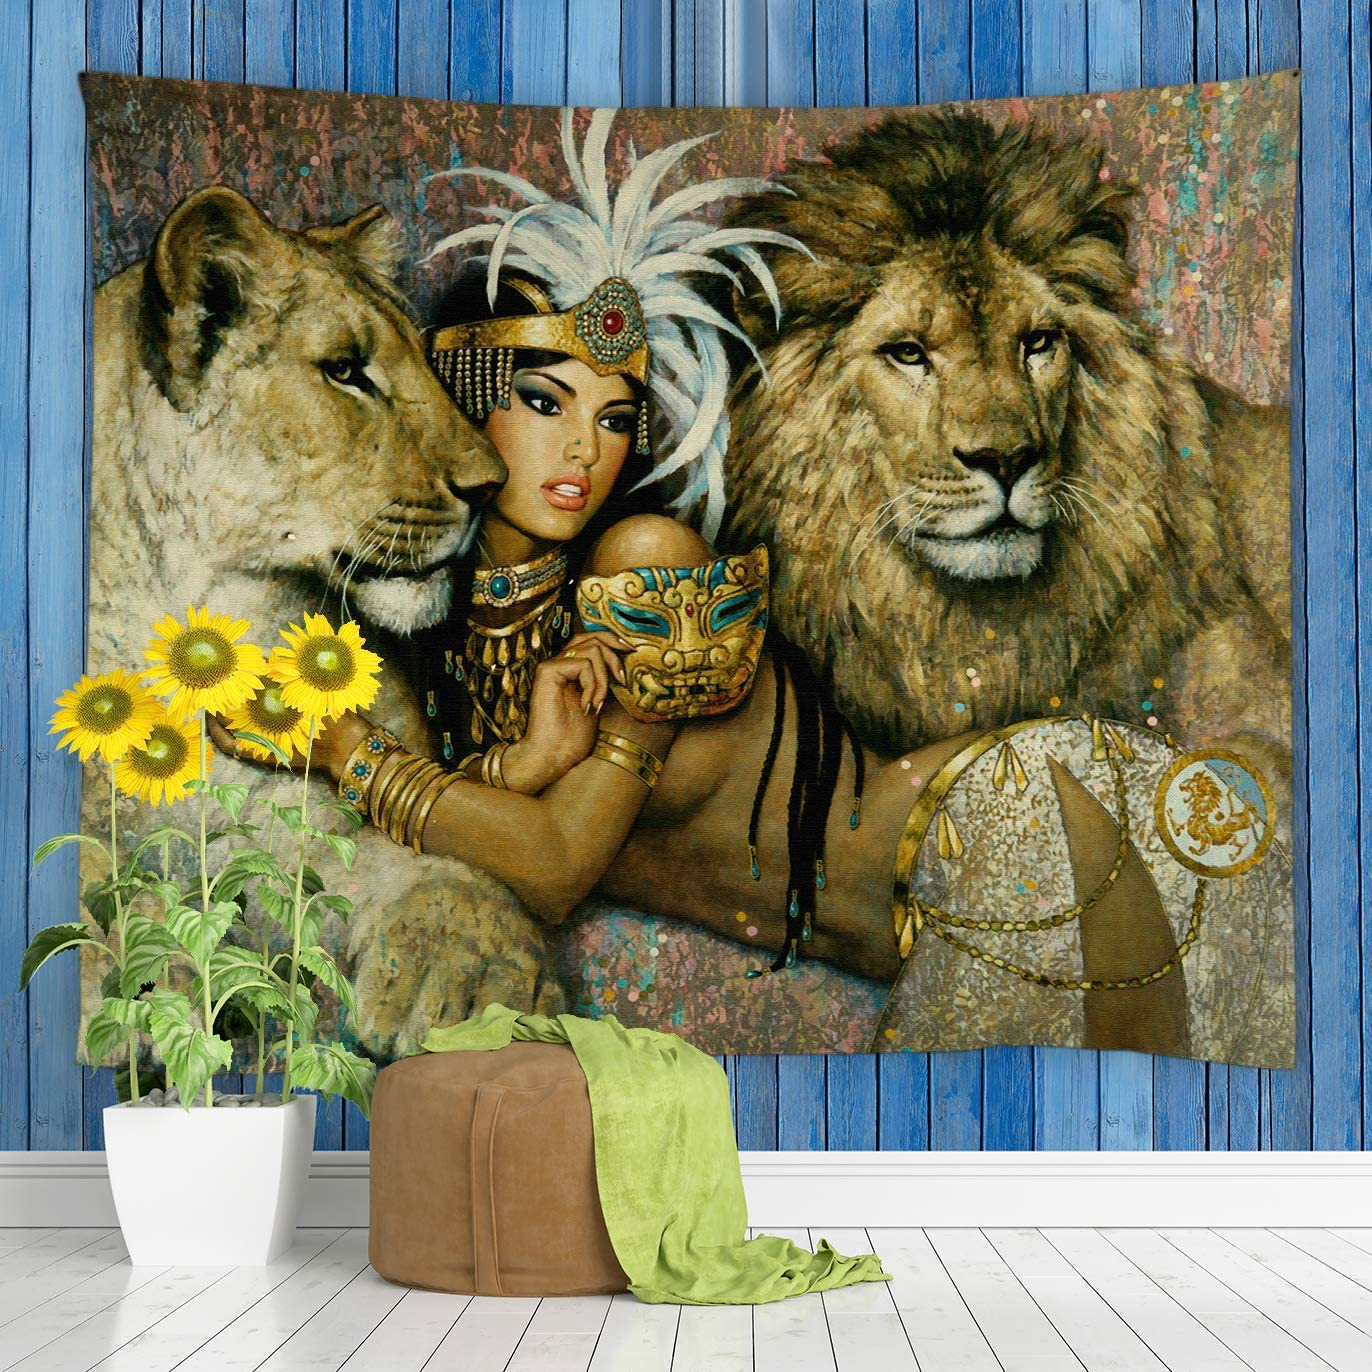 jingjiji African Animal Tapestry Lion Retro Ethnic Tribe Sexy Woman Oil Painting Art Wall Hanging Tapestries Decor Bedroom Living Room Dorm Polyester Fabric 70 x 70 Inch Brown